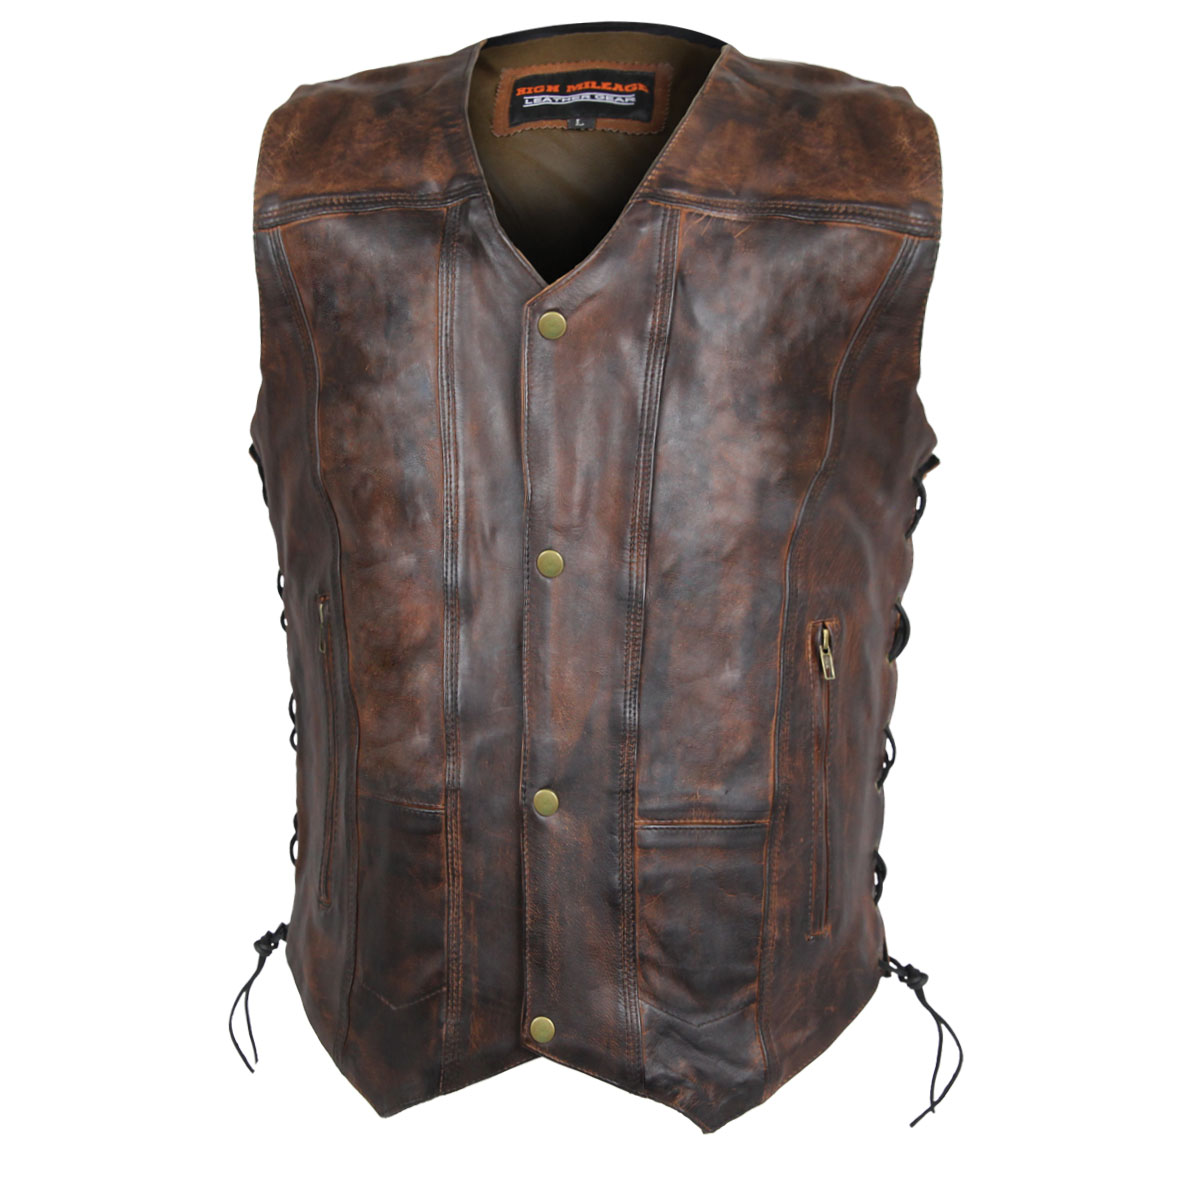 Vance Leathers Men's Classic Lightweight Vintage Brown Leather Vest